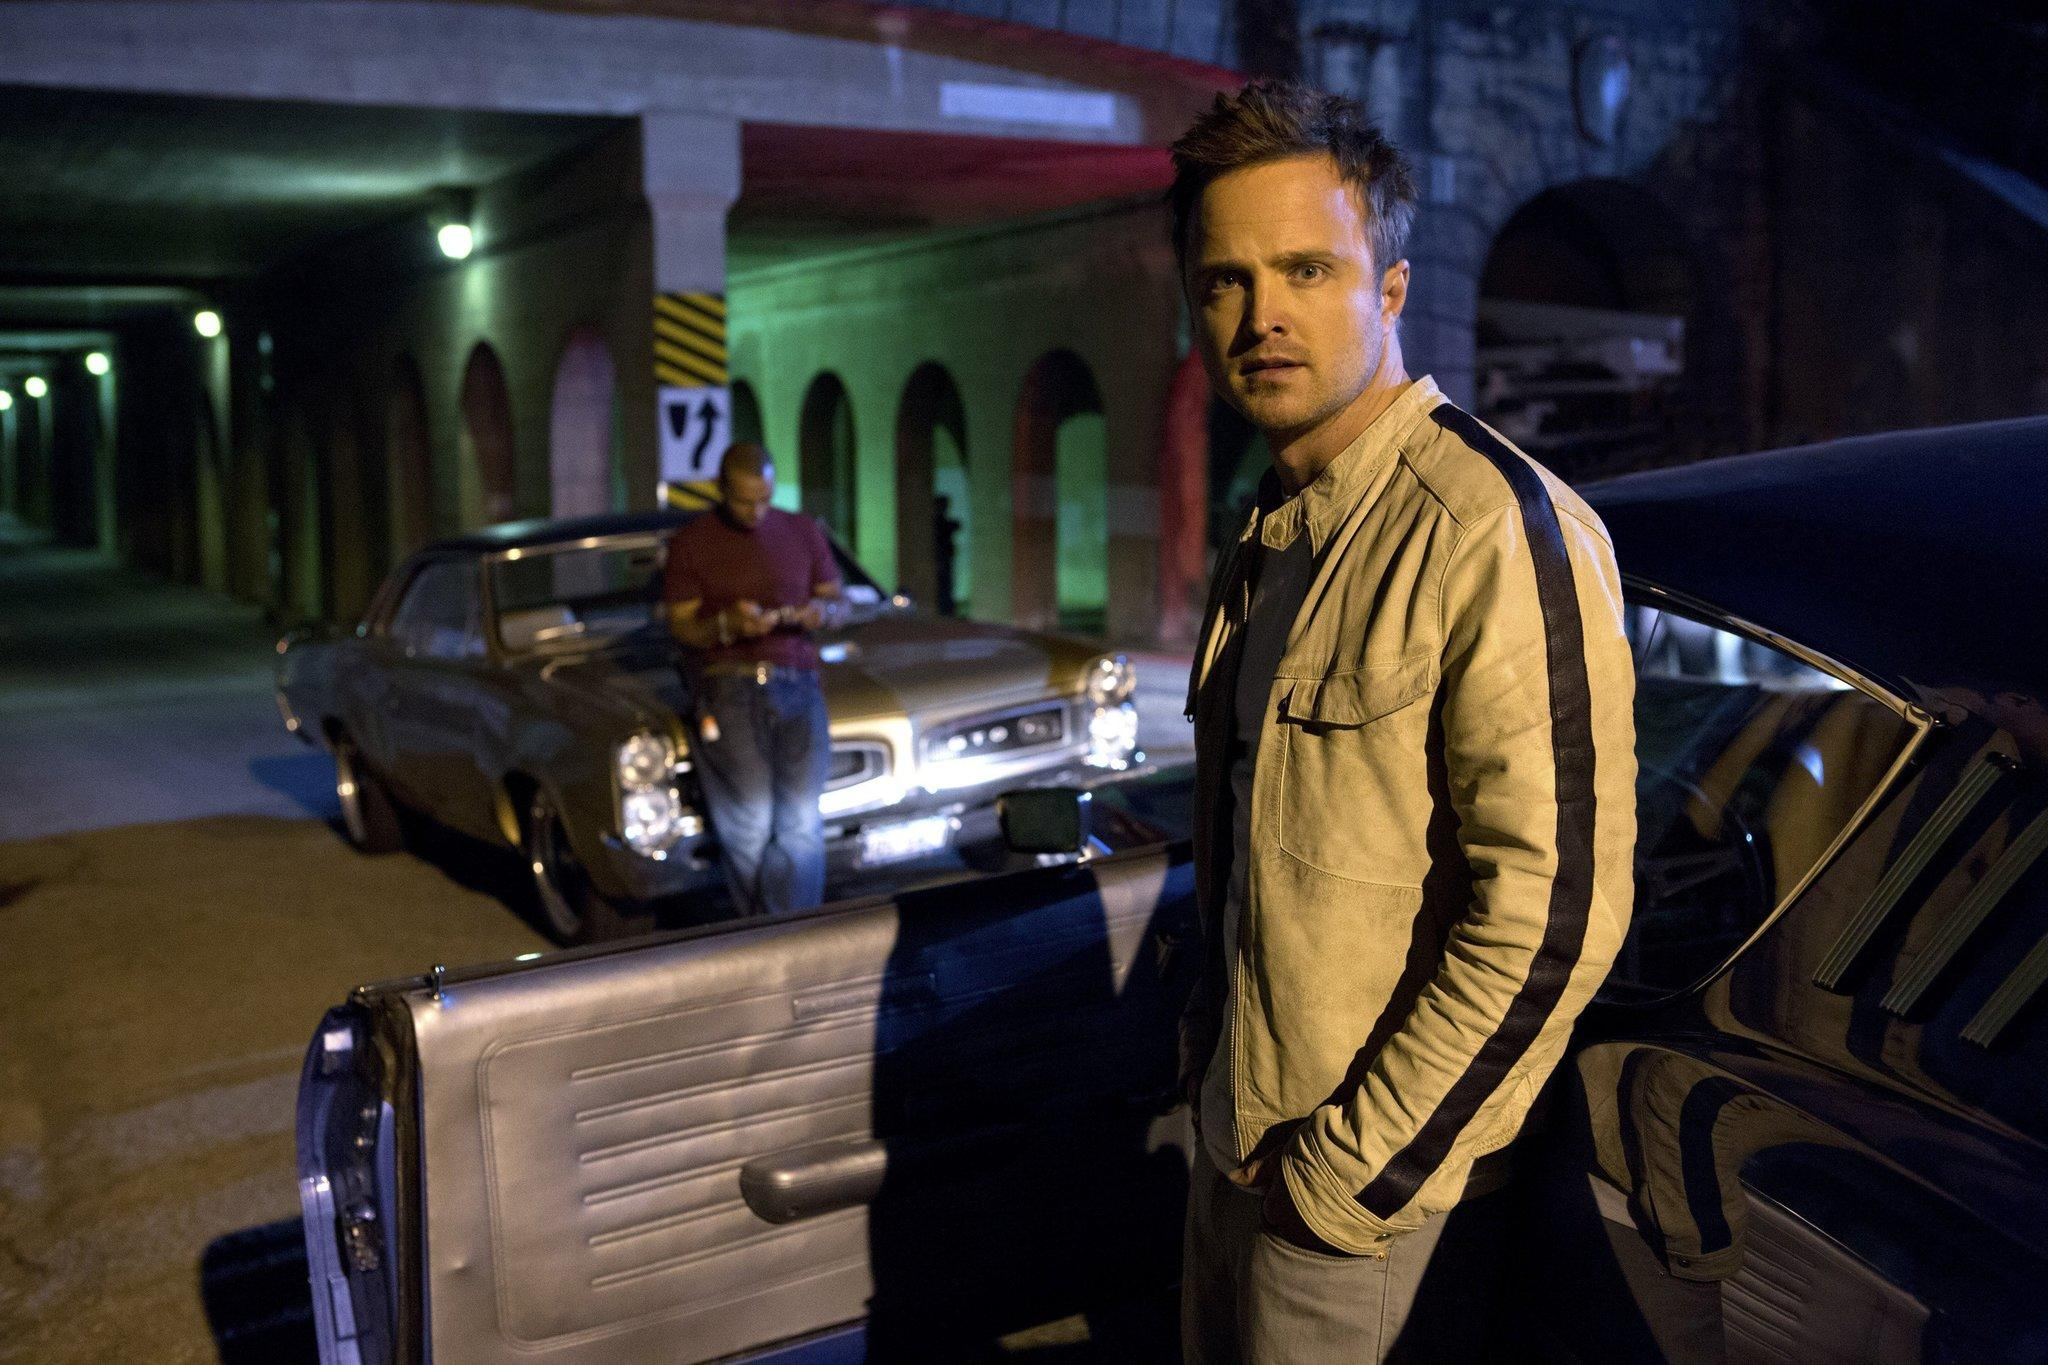 will 39 need for speed 39 make the surge in racing films backfire latimes. Black Bedroom Furniture Sets. Home Design Ideas